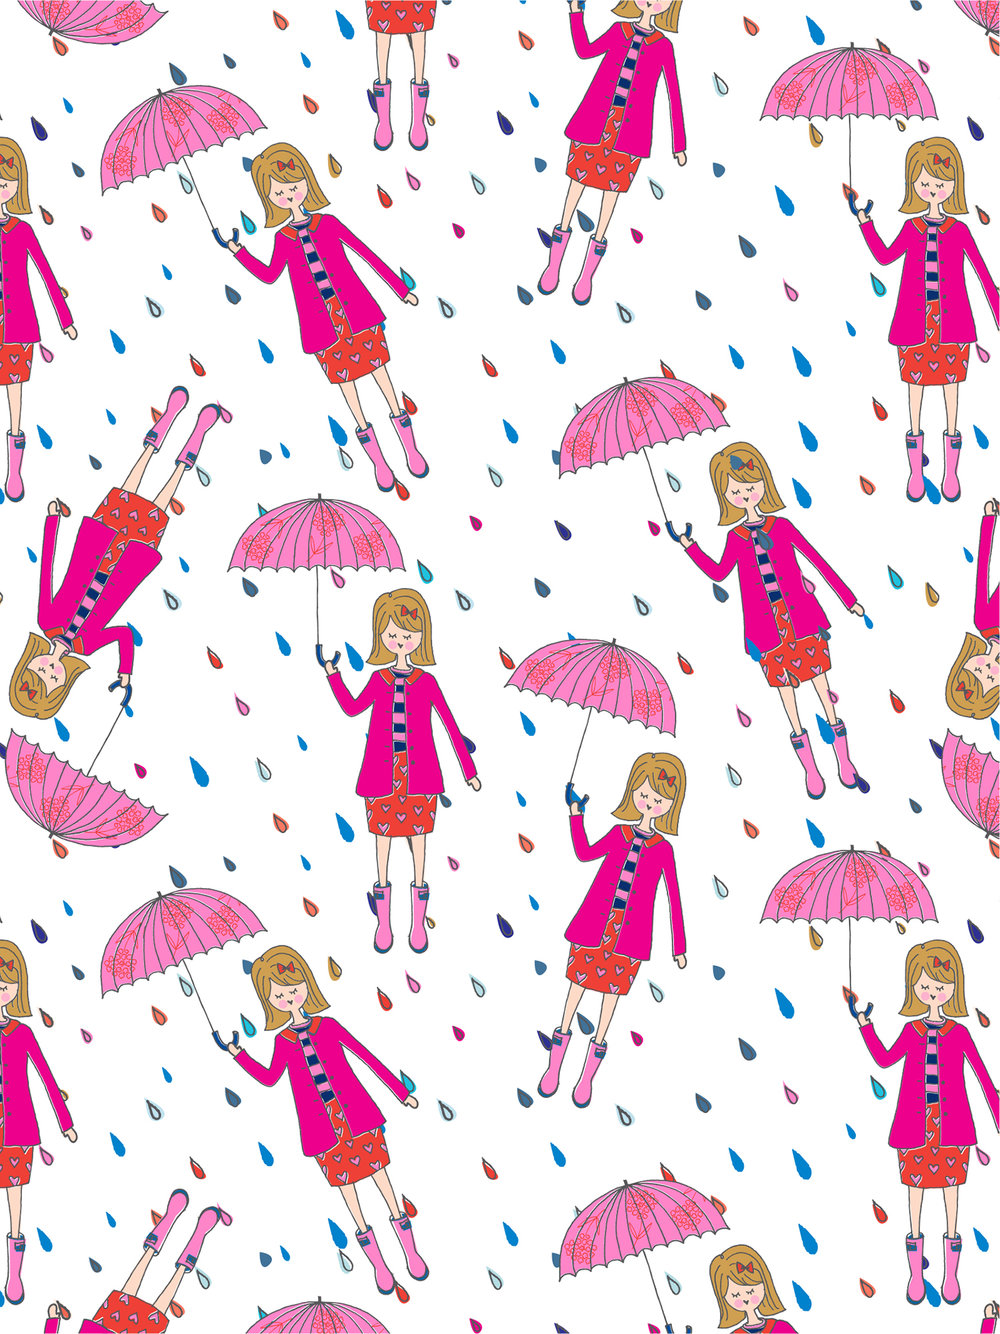 jami_darwin_girl_in_the_rain.jpg